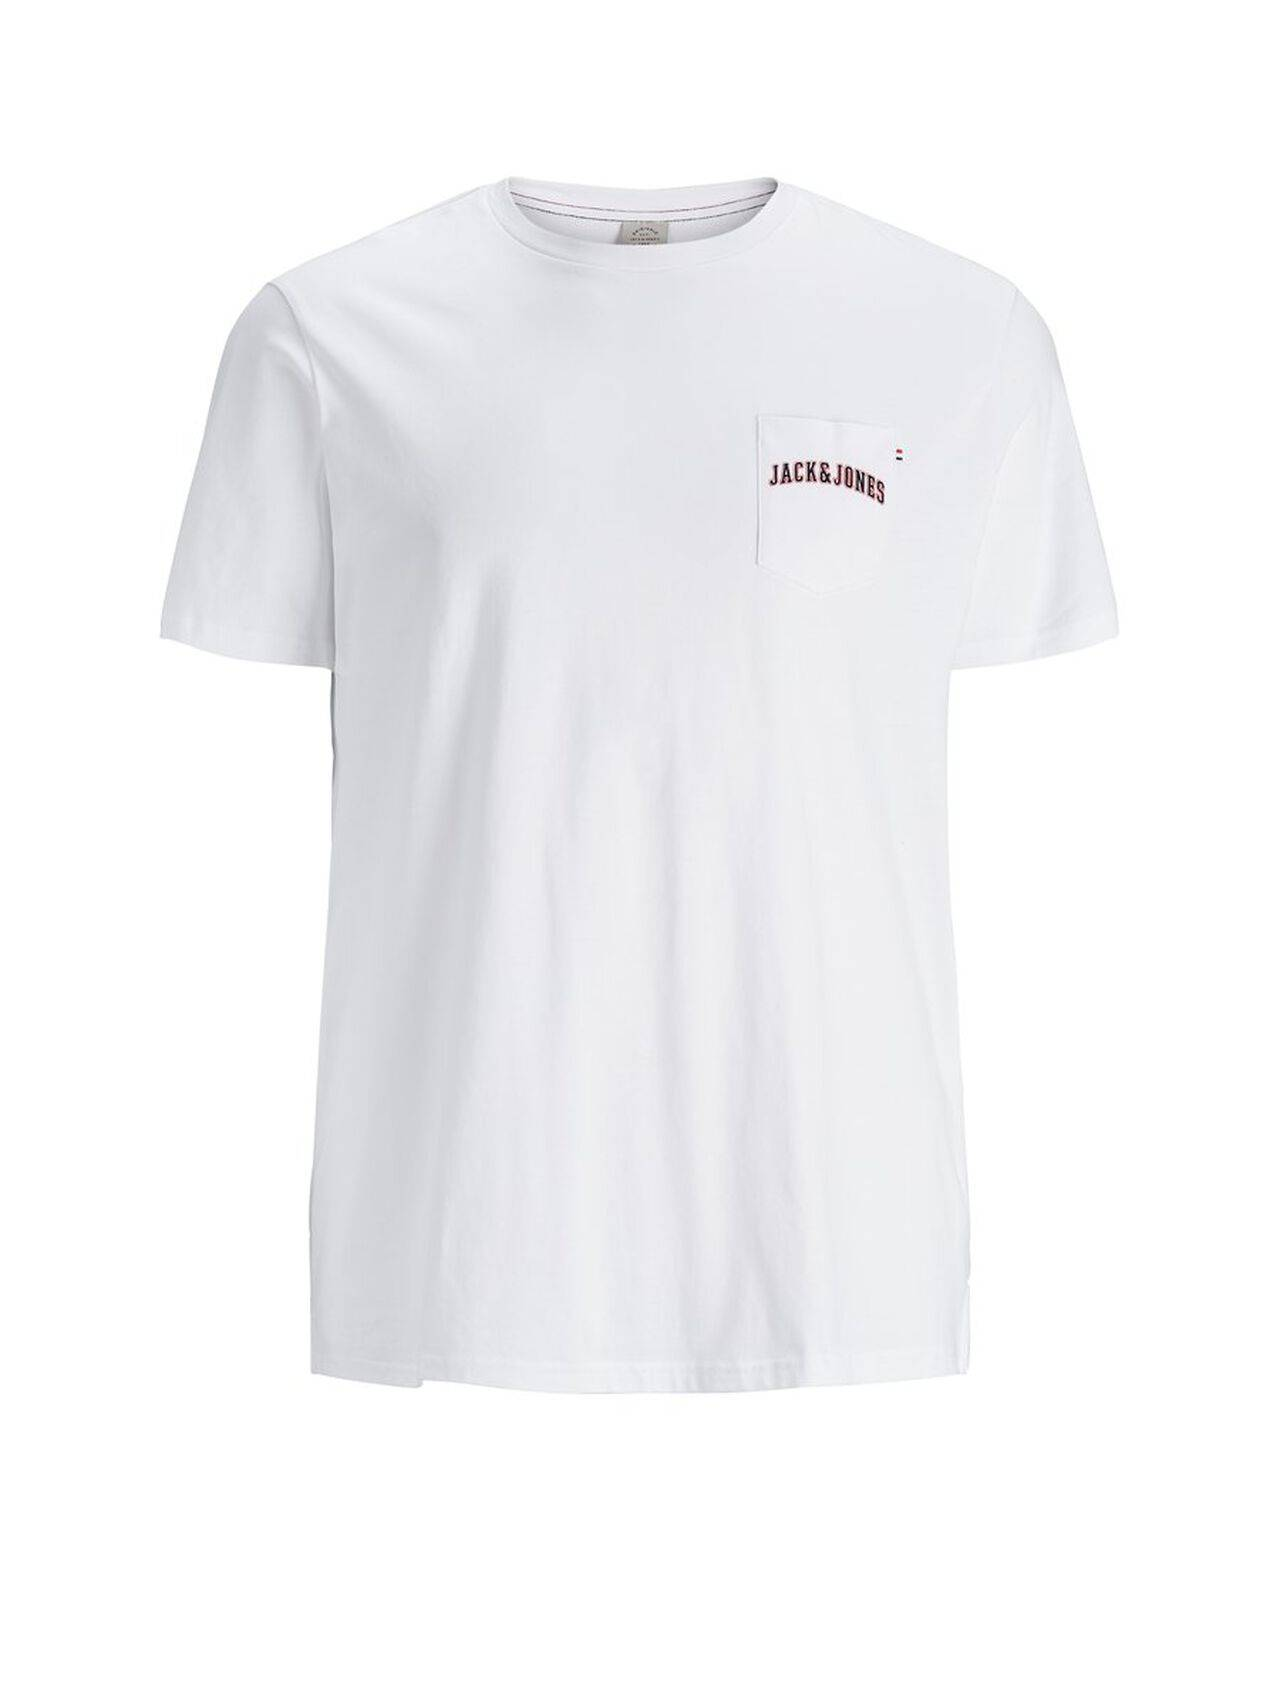 JACK & JONES Regular Fit Plus Size T-shirt Men White White